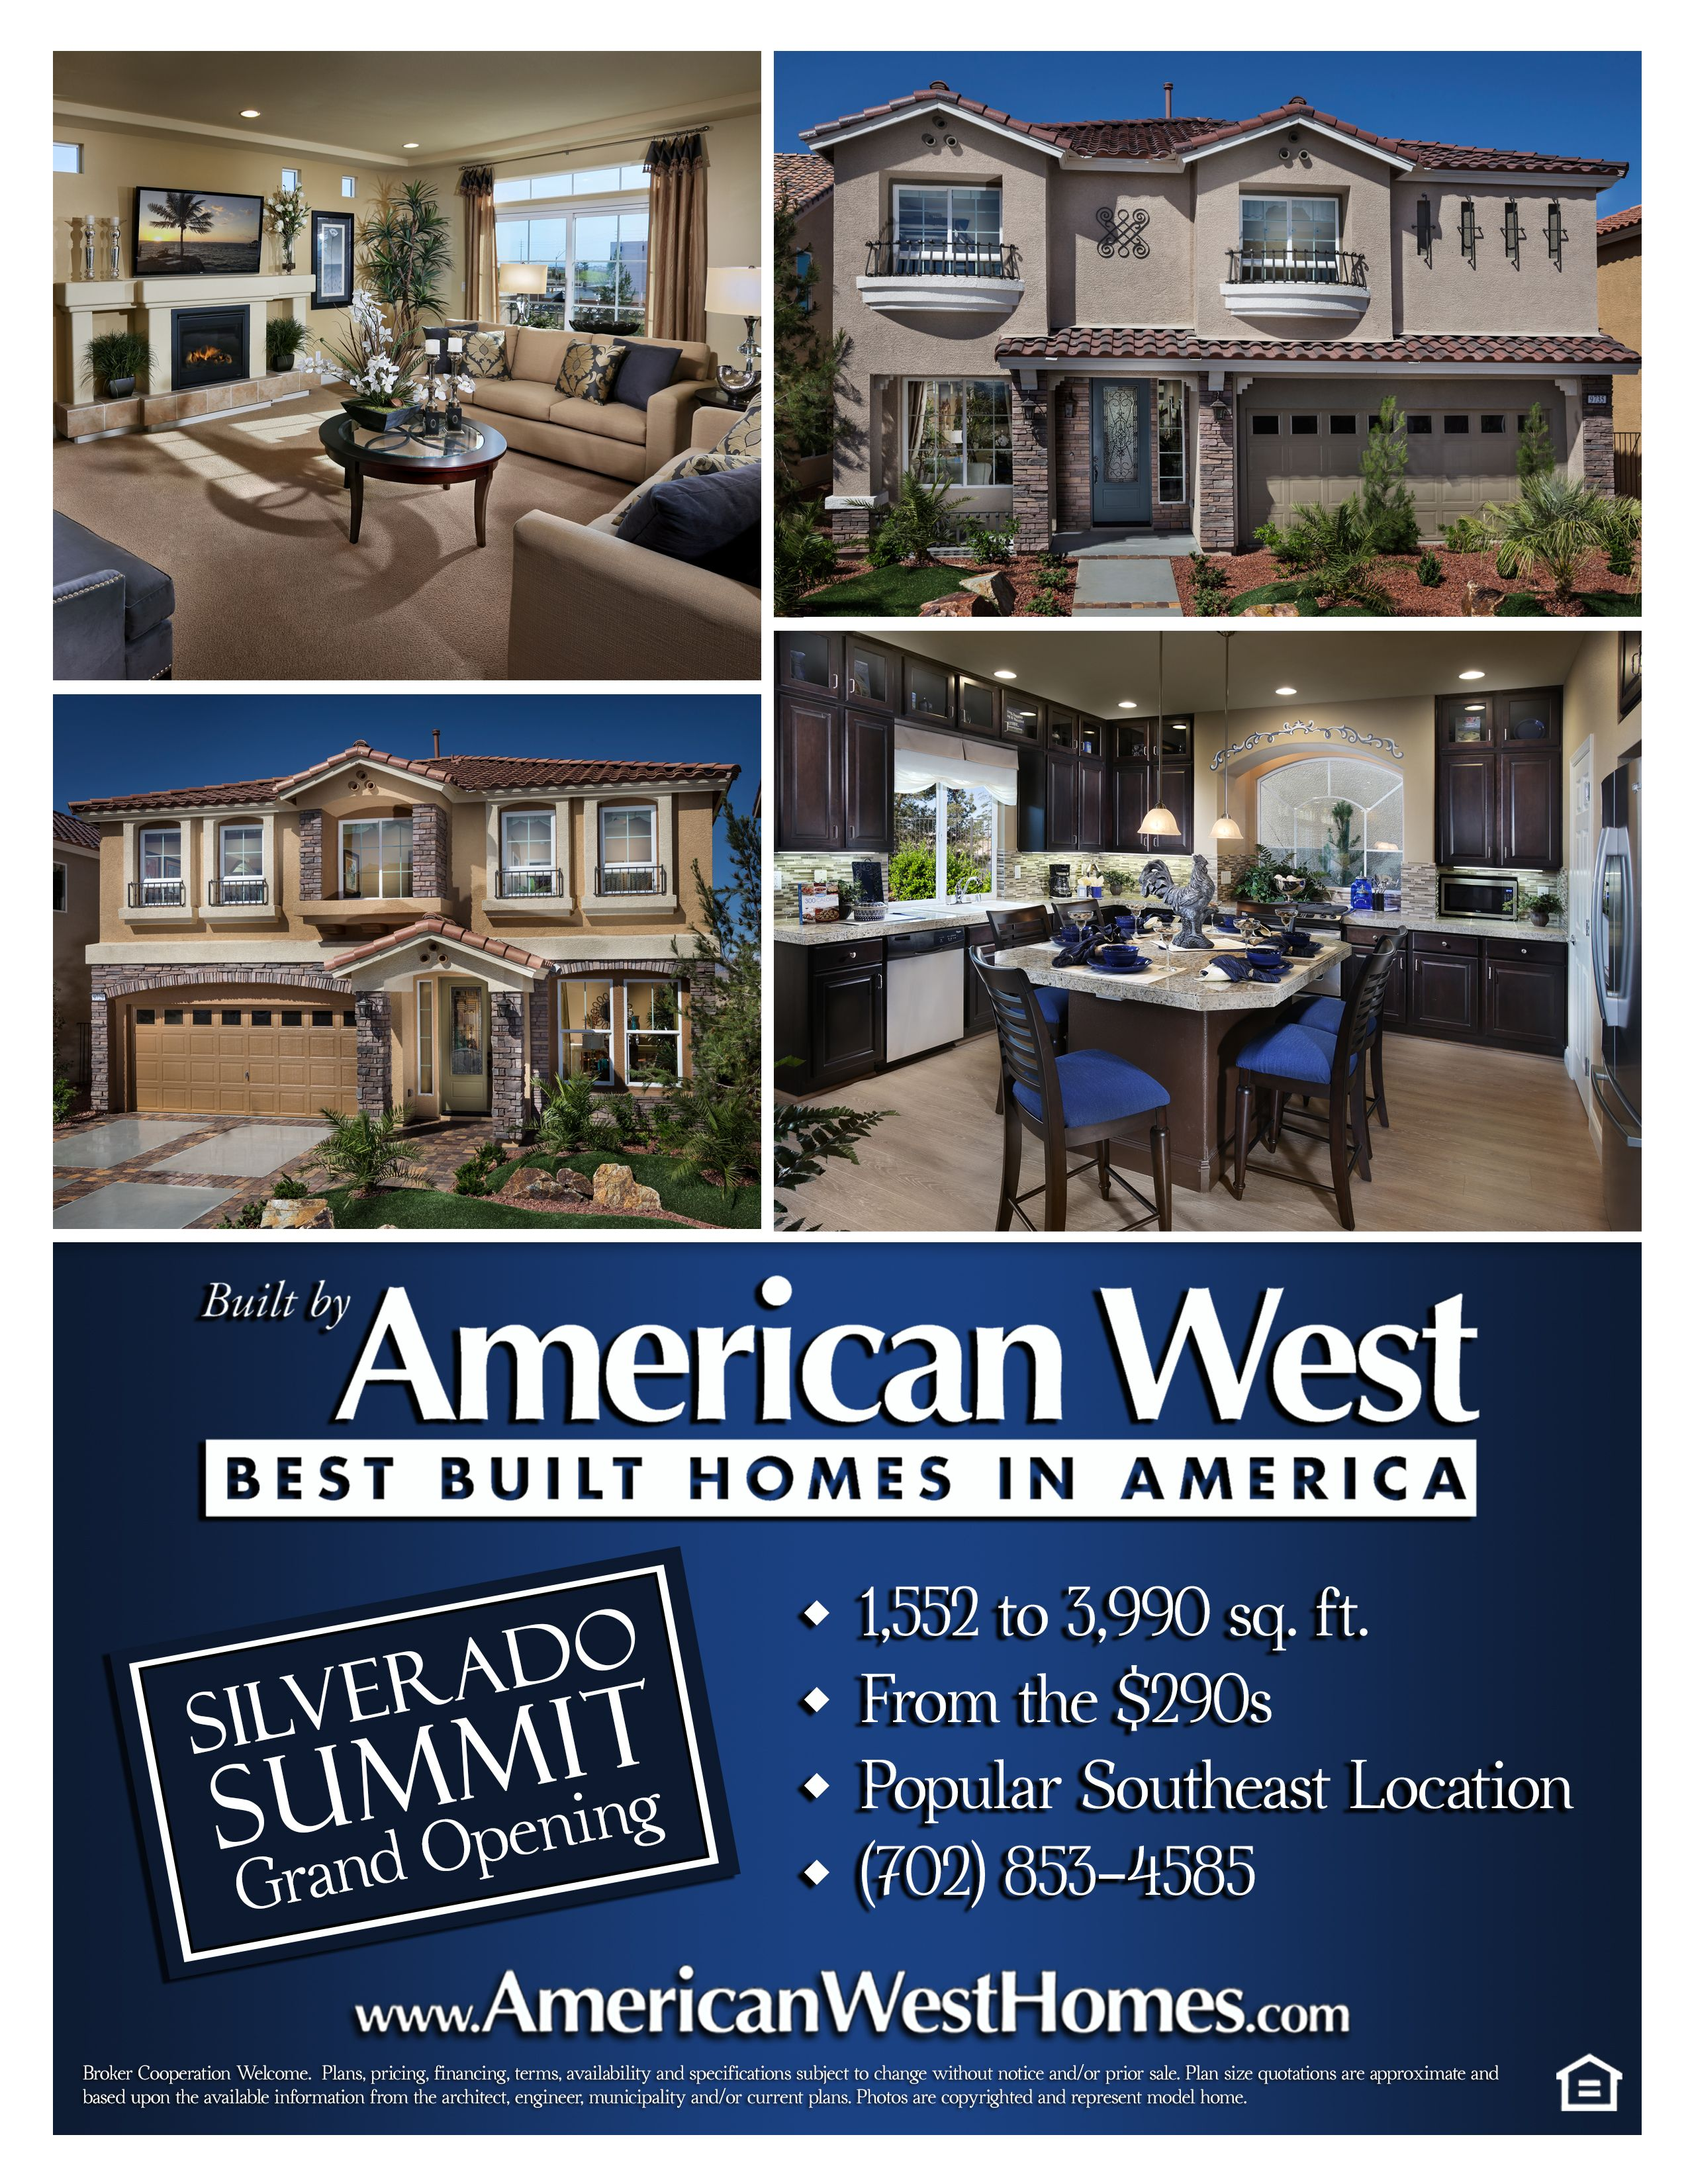 Silverado Summit Offers 5 New Home Designs Ranging From 1 552 To 3 990 Square Feet